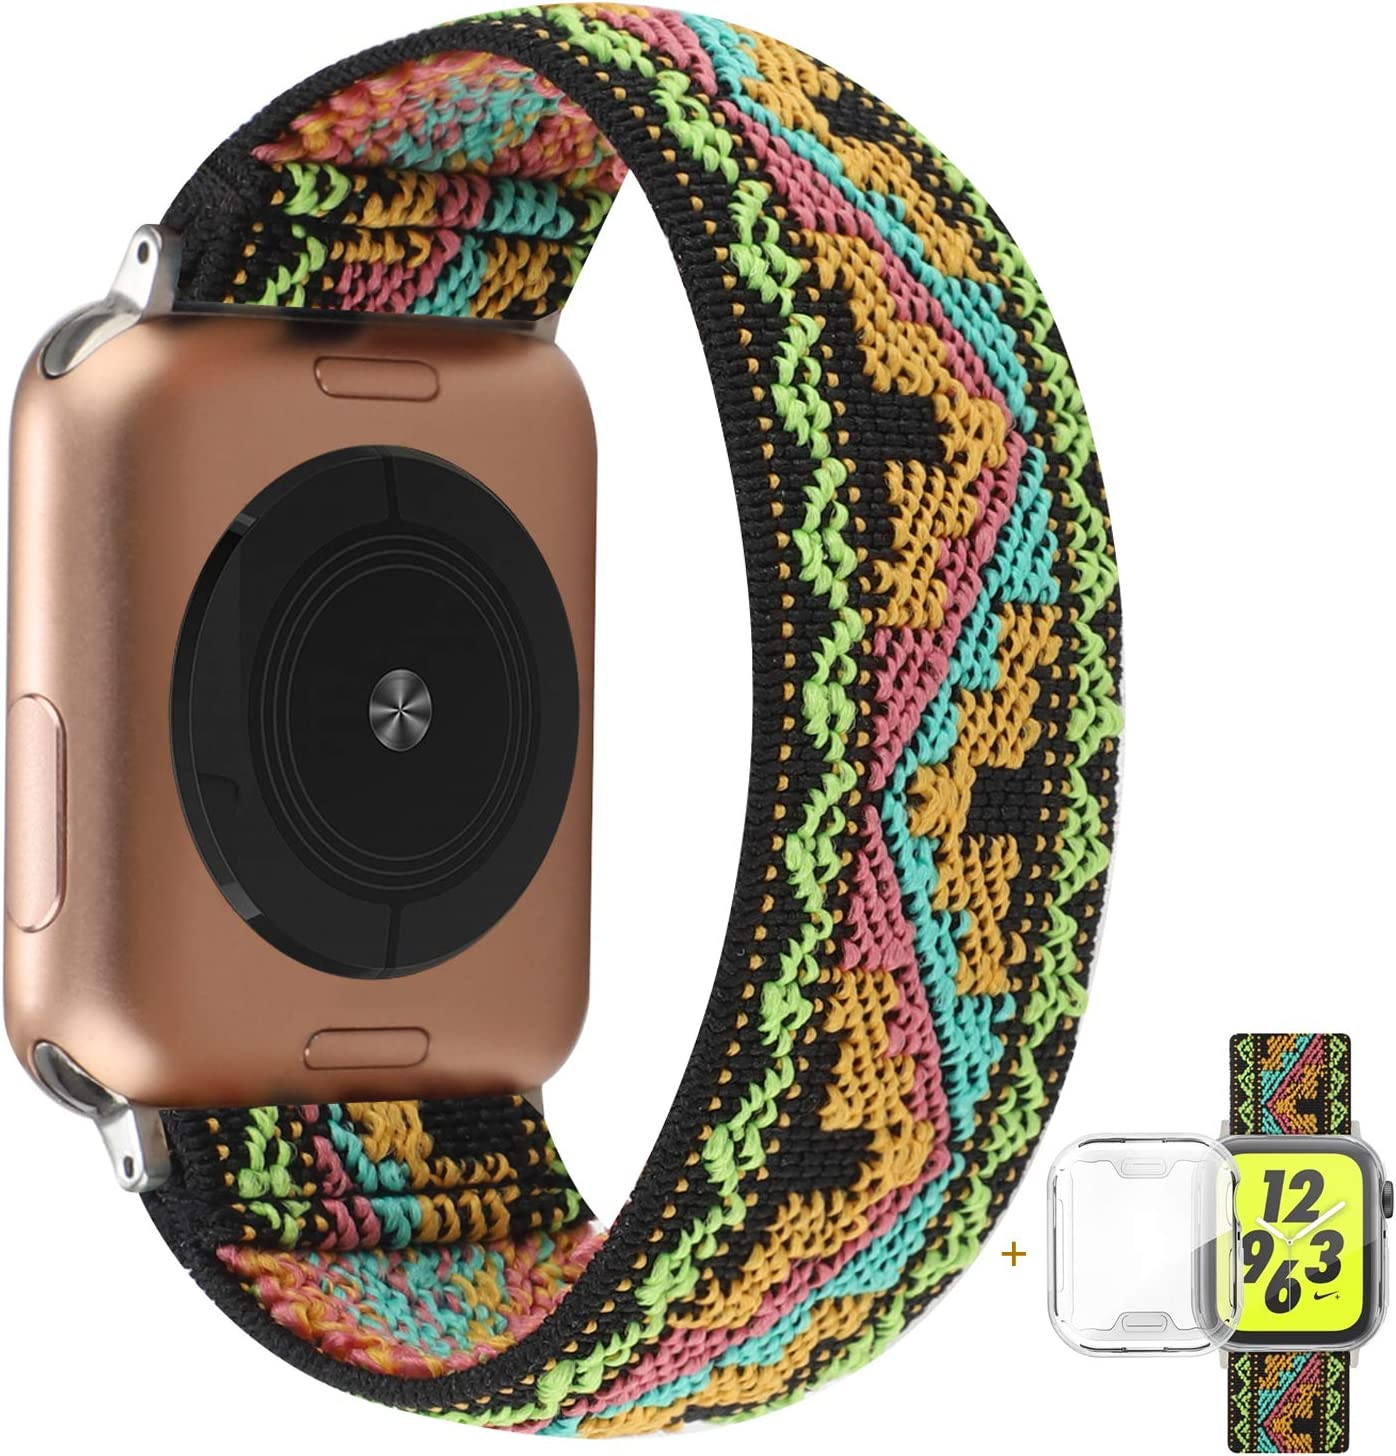 YOSWAN Compatible with Apple Watch Band 38mm 40mm Elastic Soft Nylon Solo Loop Starp Scrunchy Wristband, Women Men Cute Comfy Athletic Stretchy Bracelet Replacement Loop for iWatch SE Series 6 5 4 3 2 1 (Blue Yellow Pink Wave, 38mm/40mm L Size)